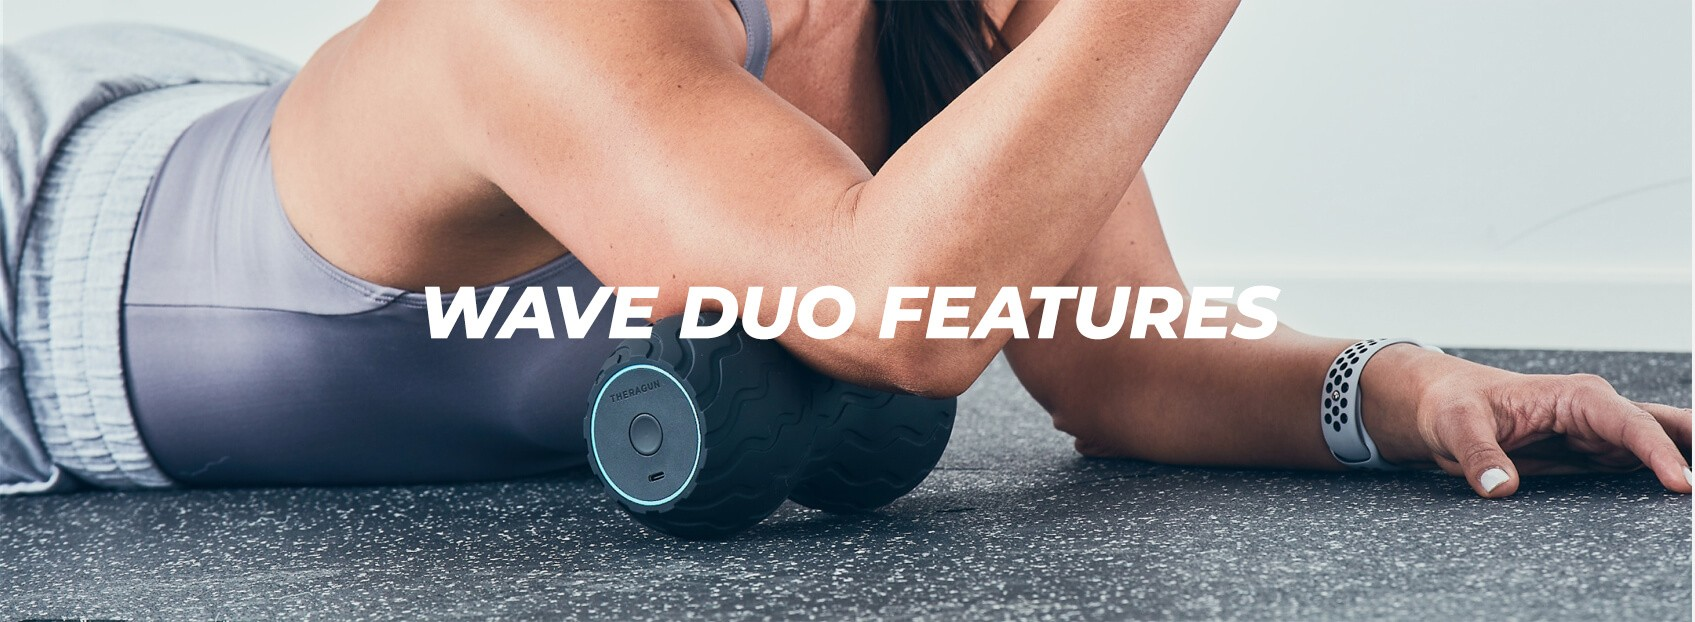 wave duo features